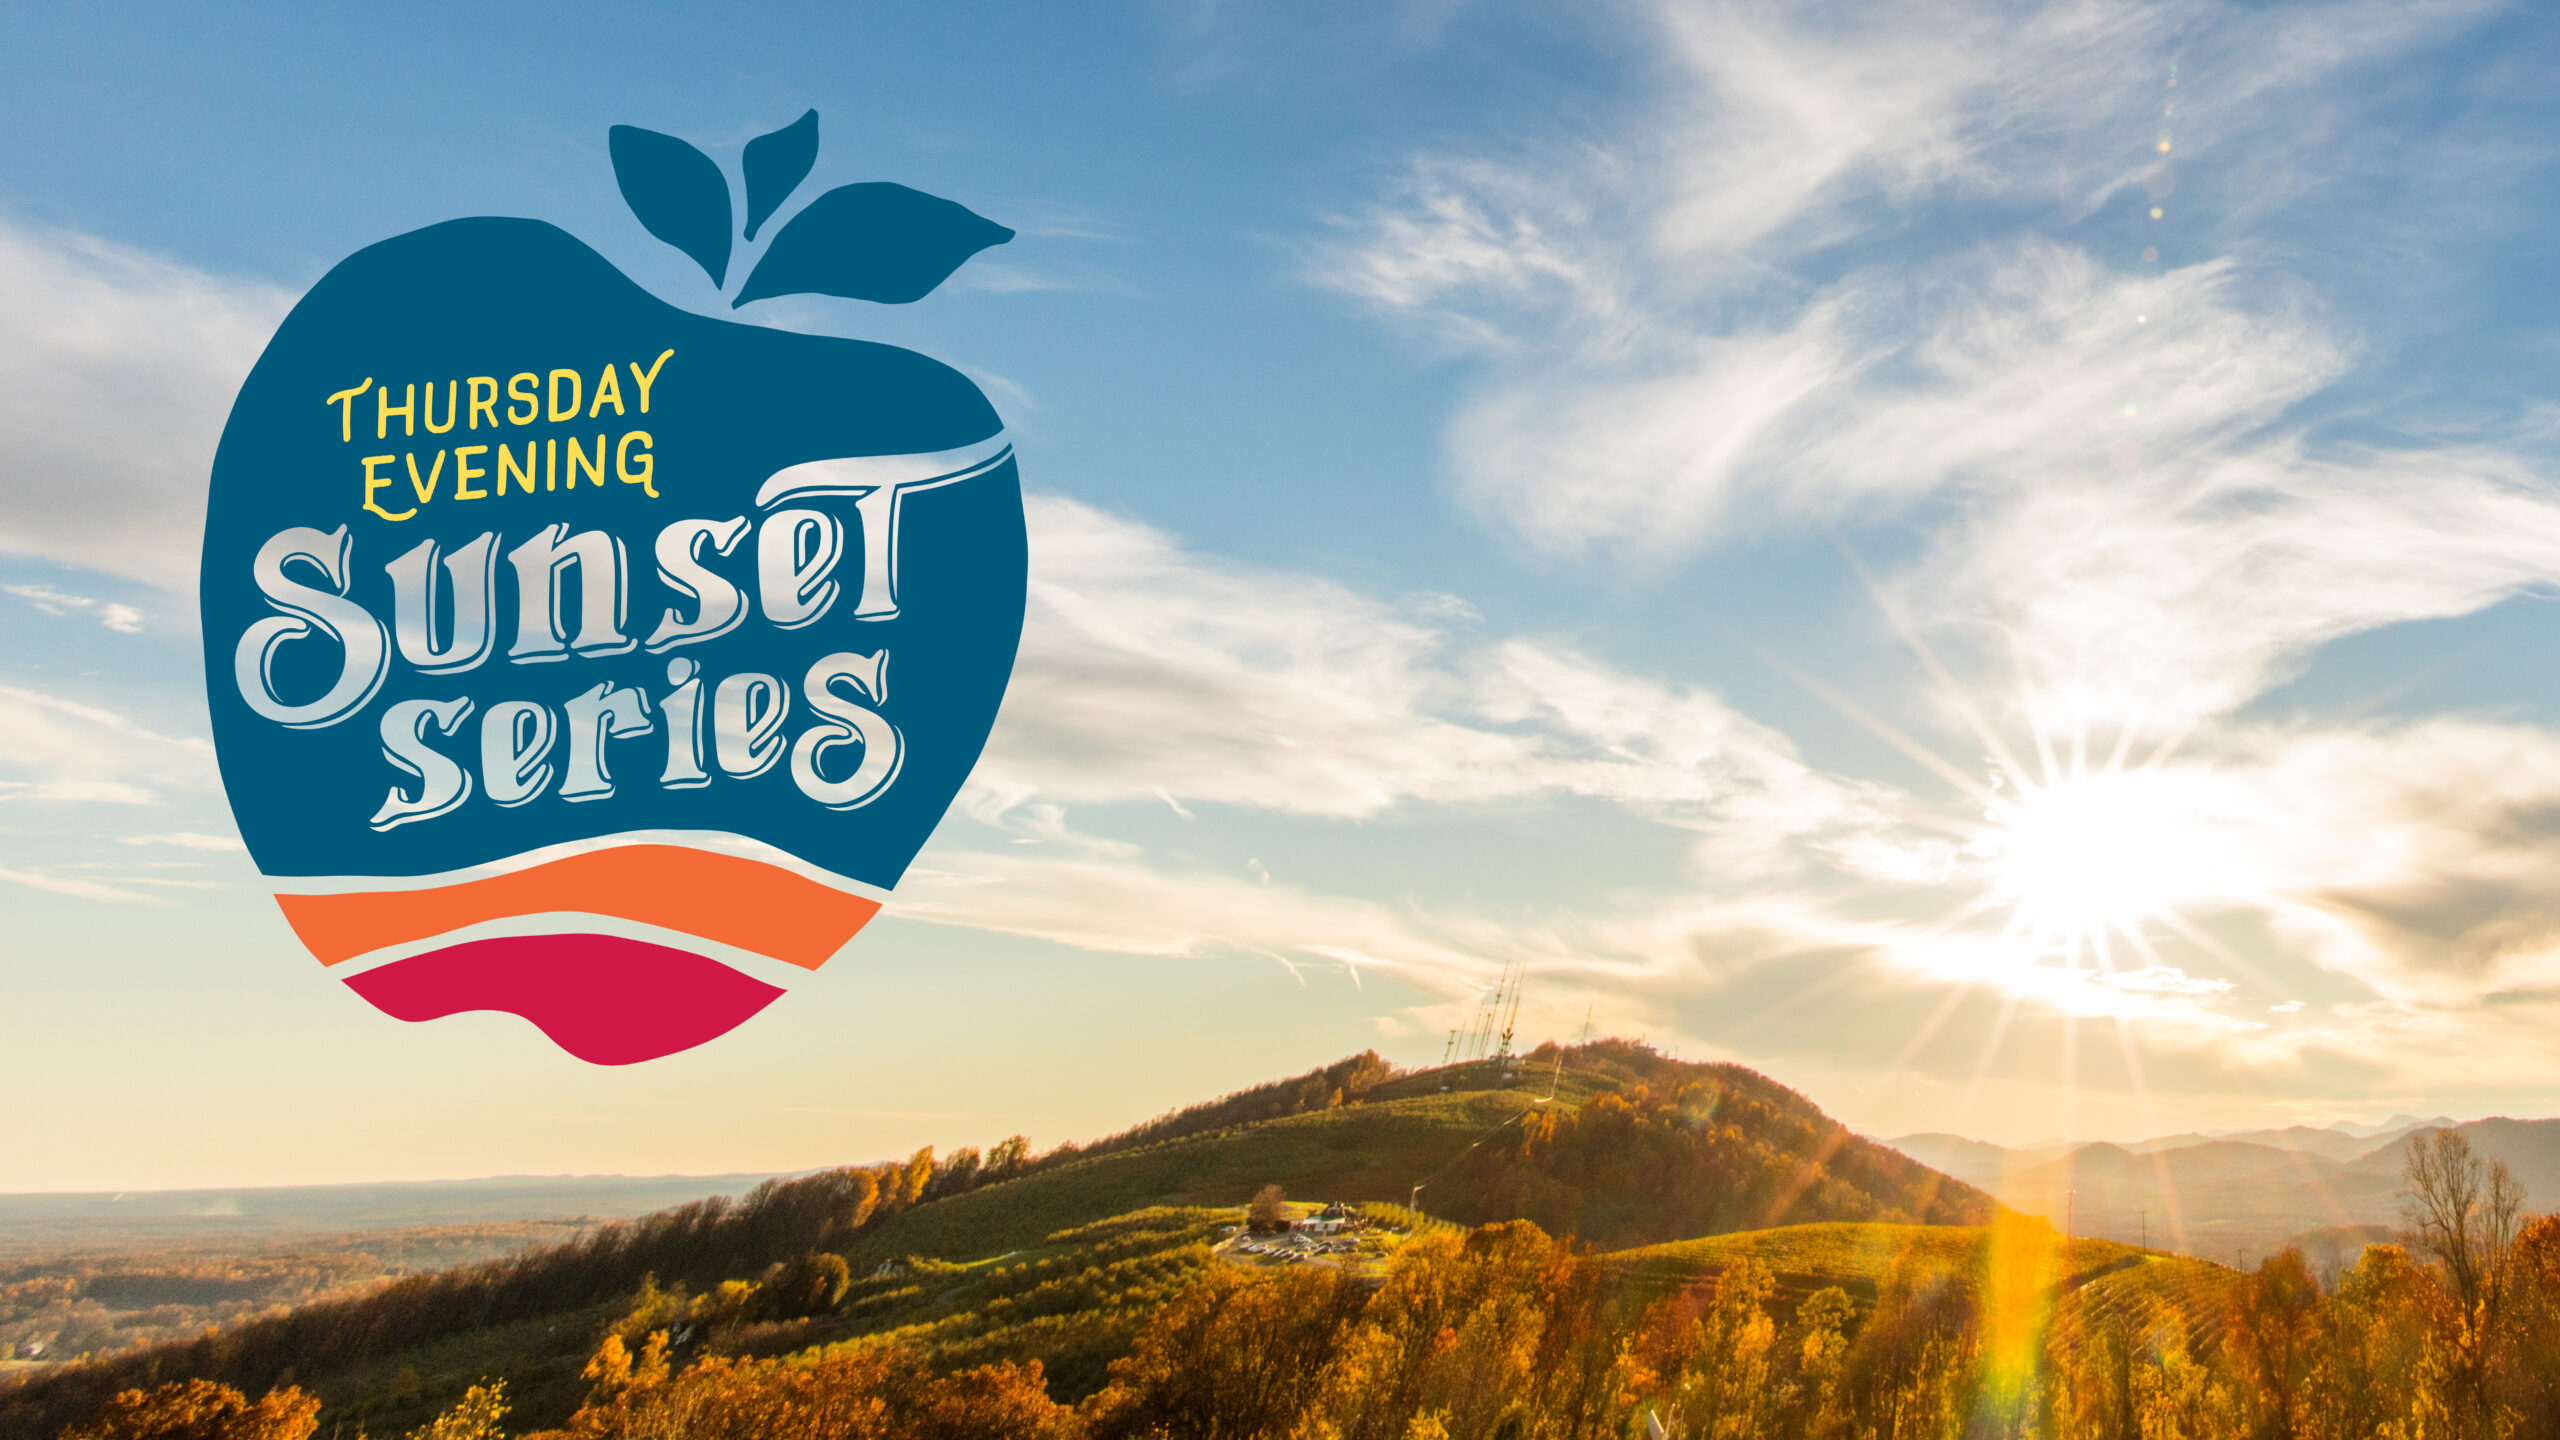 Carter Mountain Orchard's Thursday Evening Sunset Series with live music every Thursday